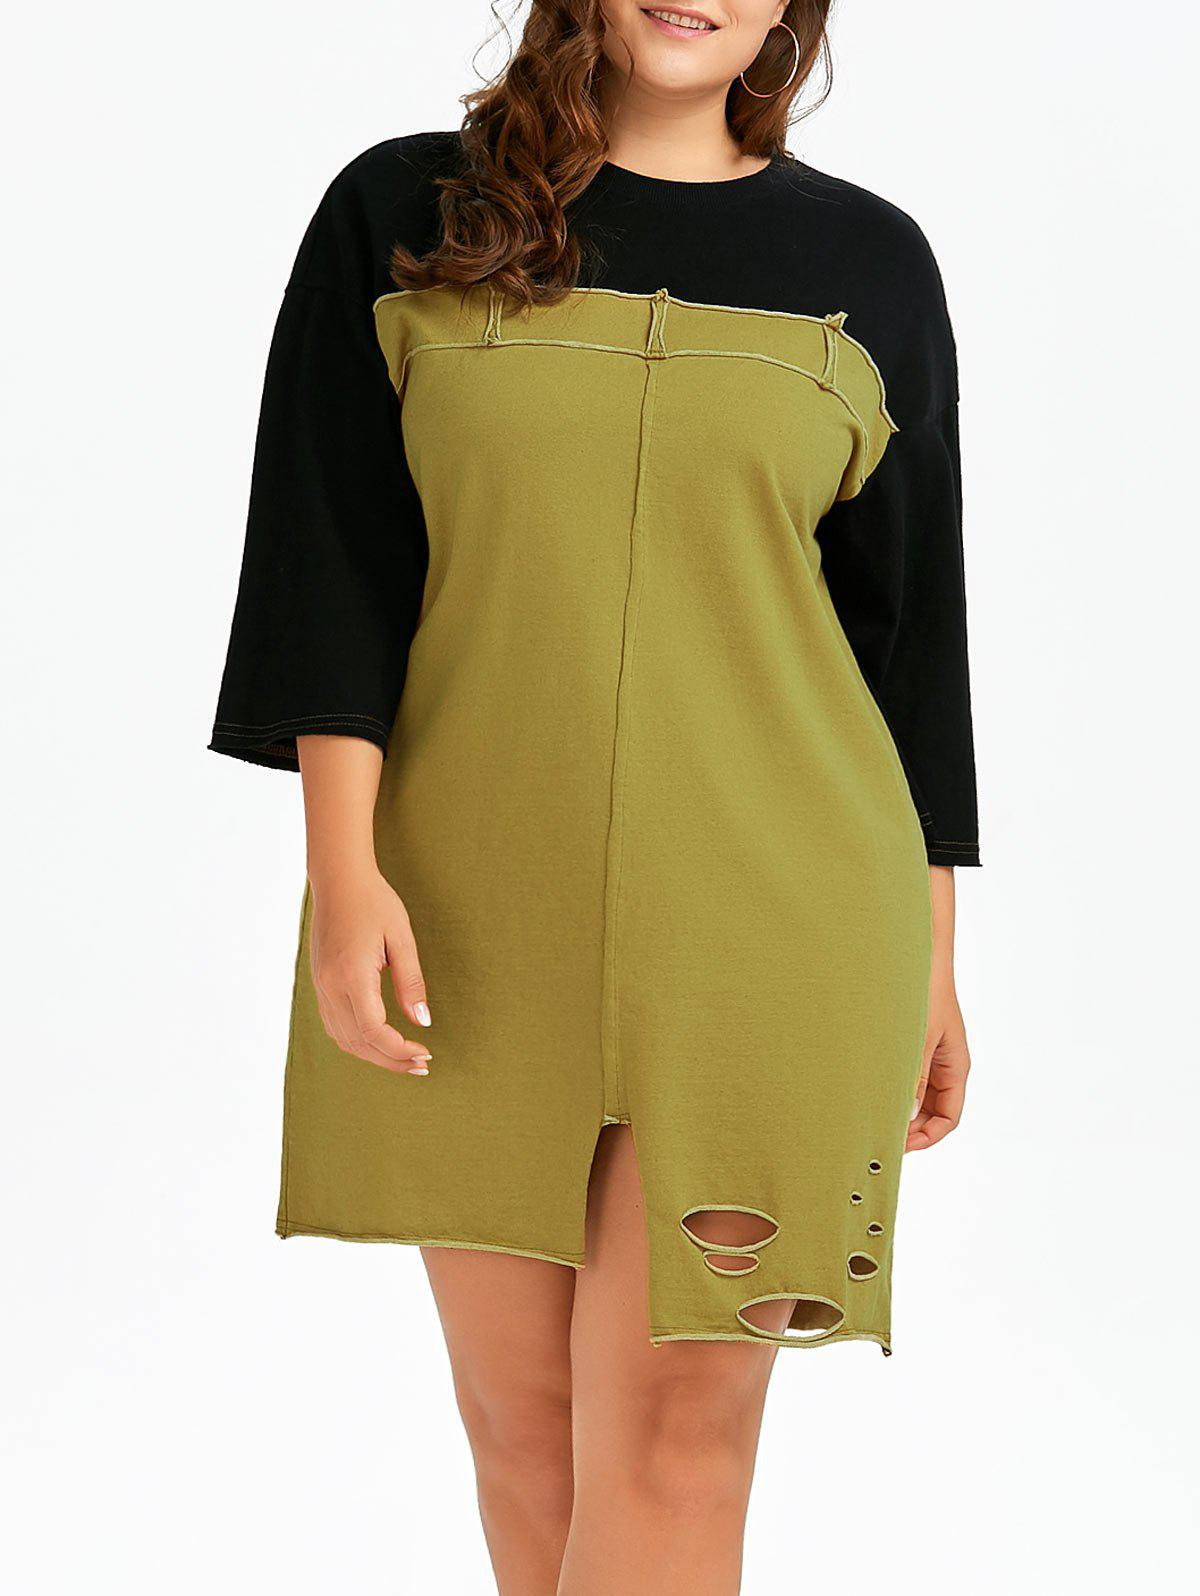 Earthy One Size Plus Size Ripped Colorblock T Shirt Dress